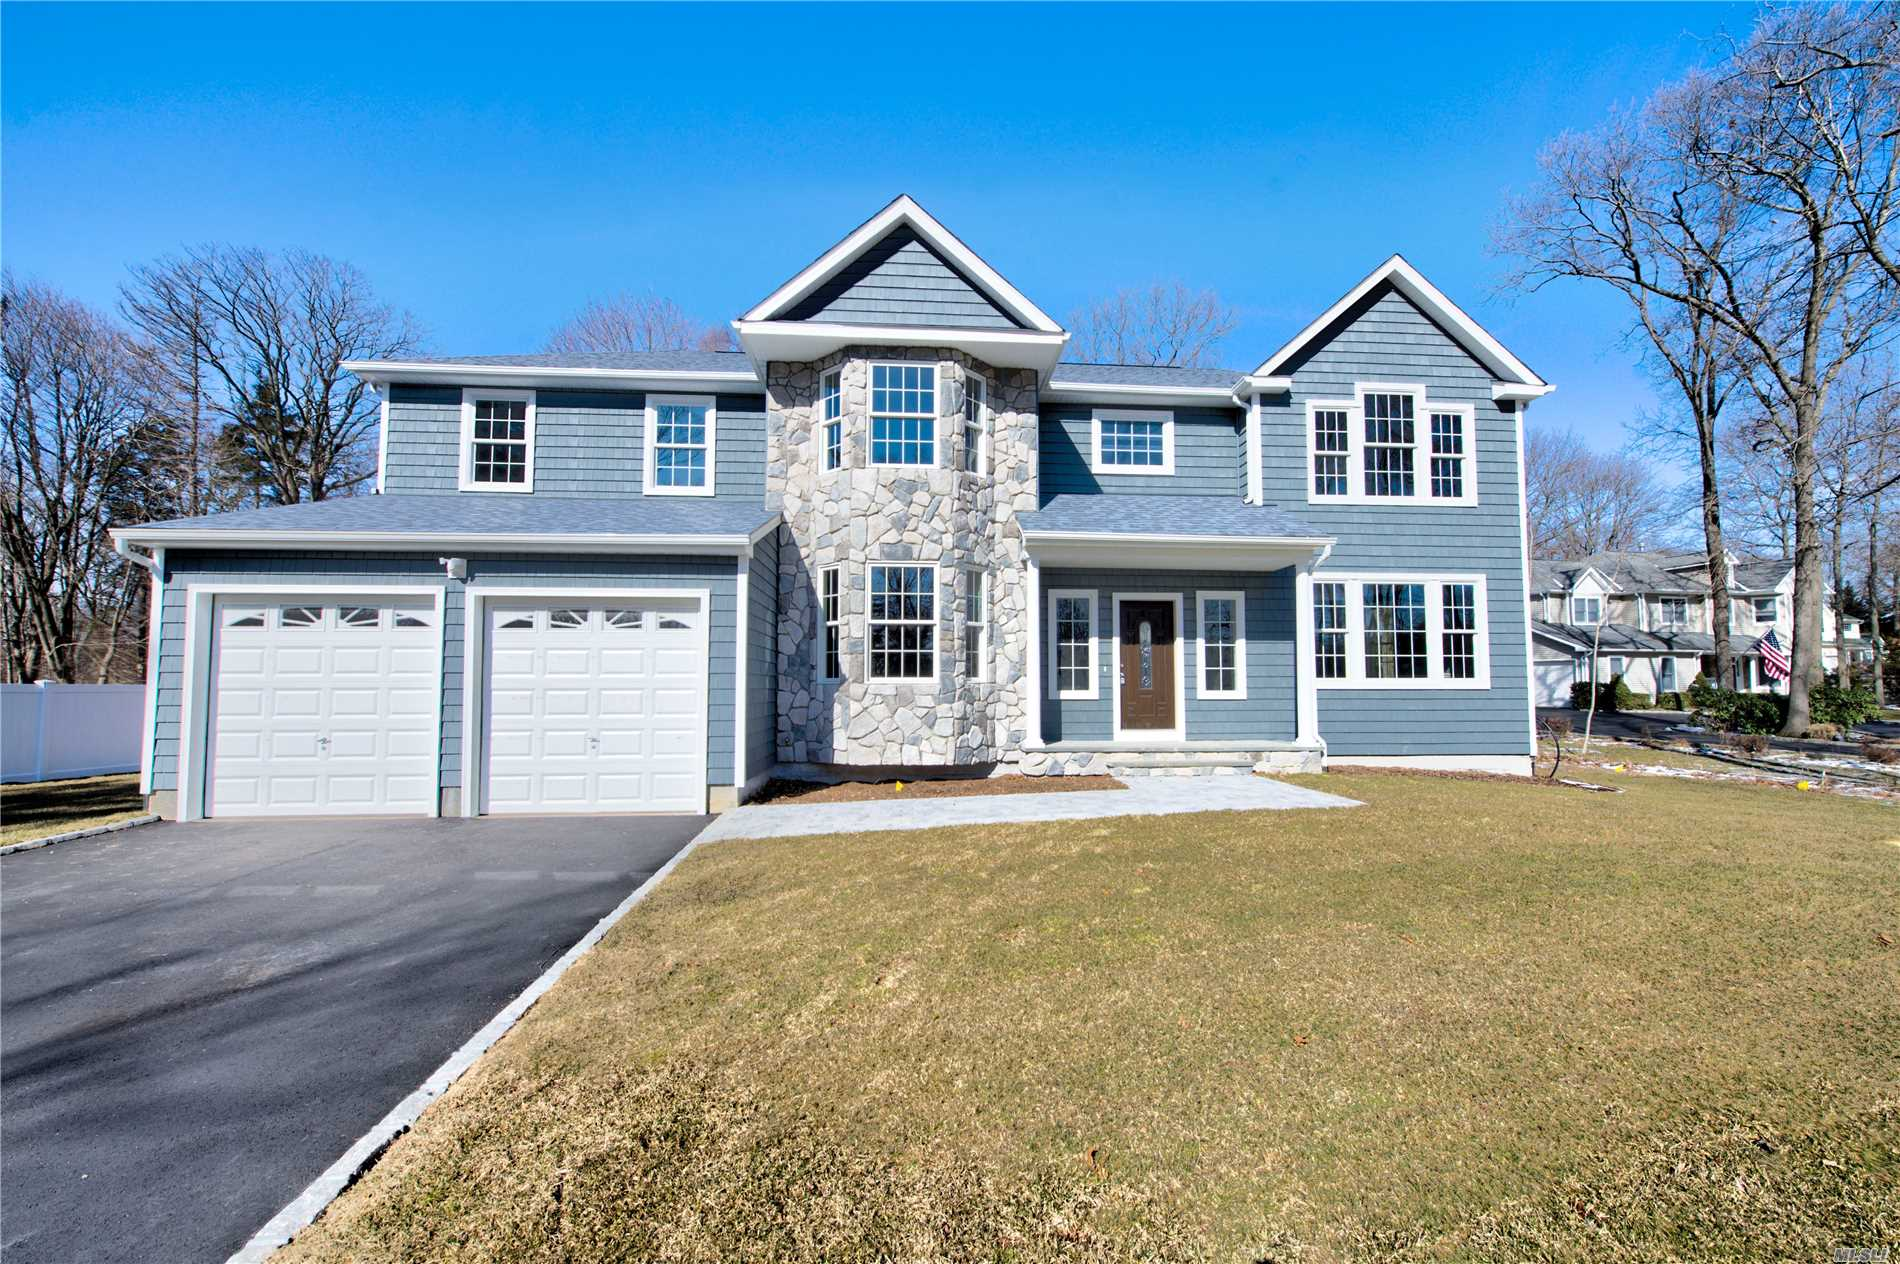 Home Is Completed!! Brand New 3464 Sqft Colonial With 5 Bedrooms, 3 Bath Colonial, Attached 2 Car Garage, Vaulted Ceilings, And A 9 Foot Ceiling W/Outside Entrance And Low Line Septic System! Den, Lr, Formal Dr, Granite Designer Eik With Stainless Steel Appliances, Wood Floors, 200 Amp, 2 Zone Cac And More!